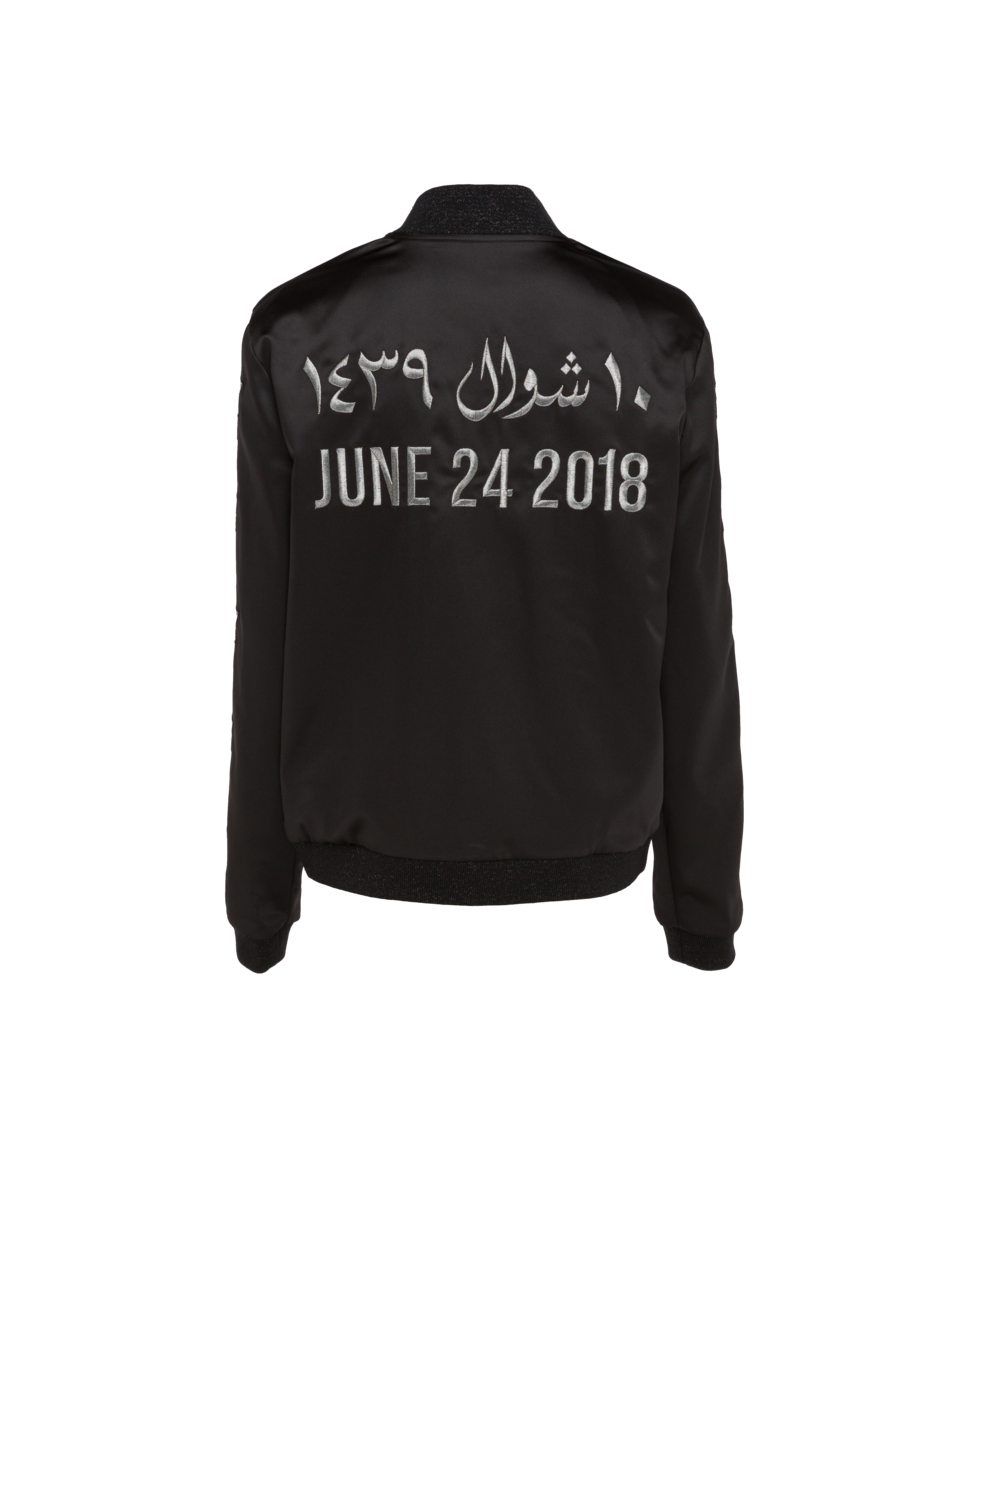 June 24 Driving Jacket Black/Platinum (UNISEX)